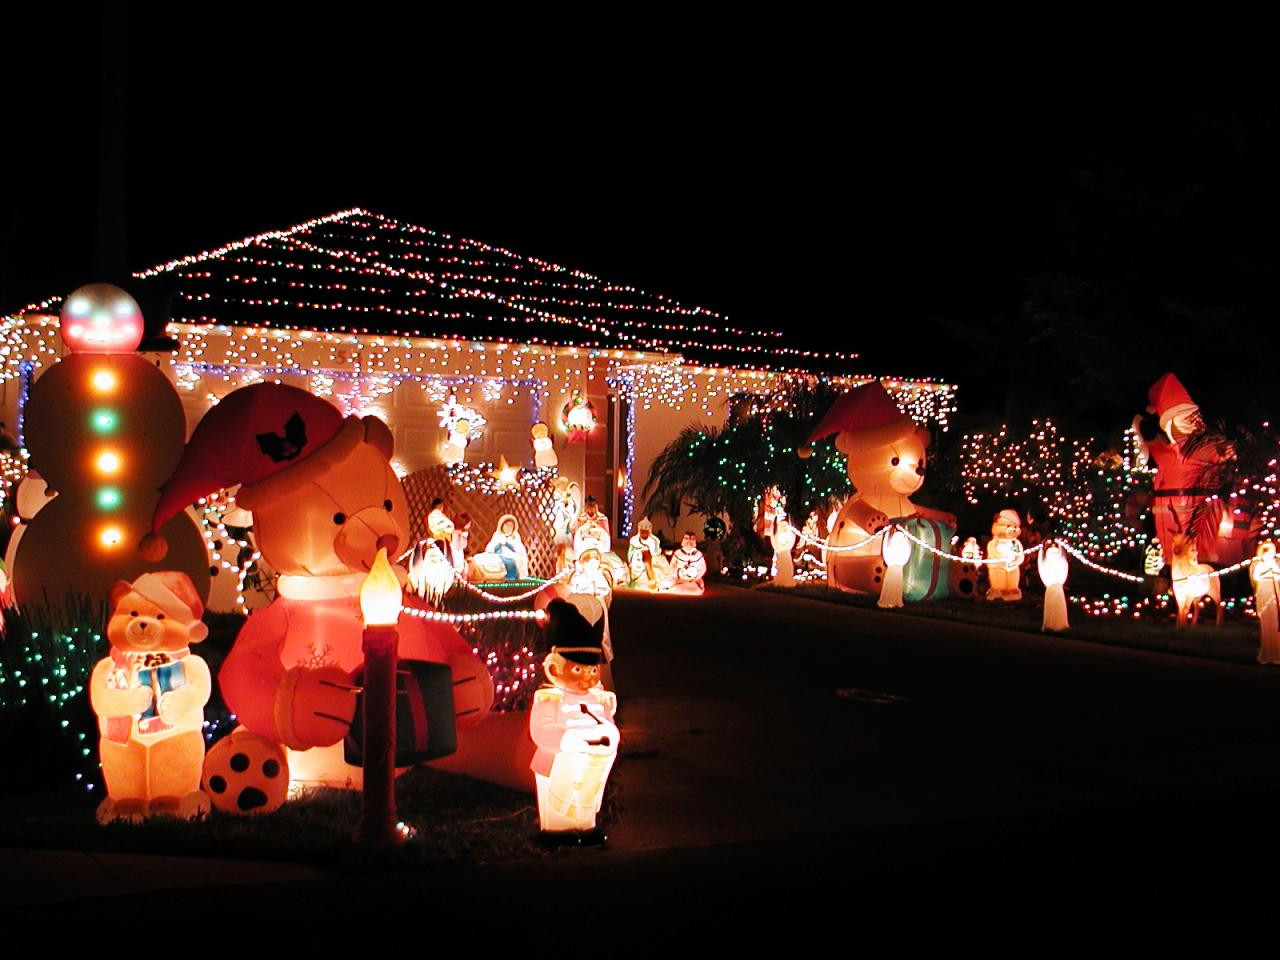 Half Of Best Outdoor LED Christmas Lights Don't Work